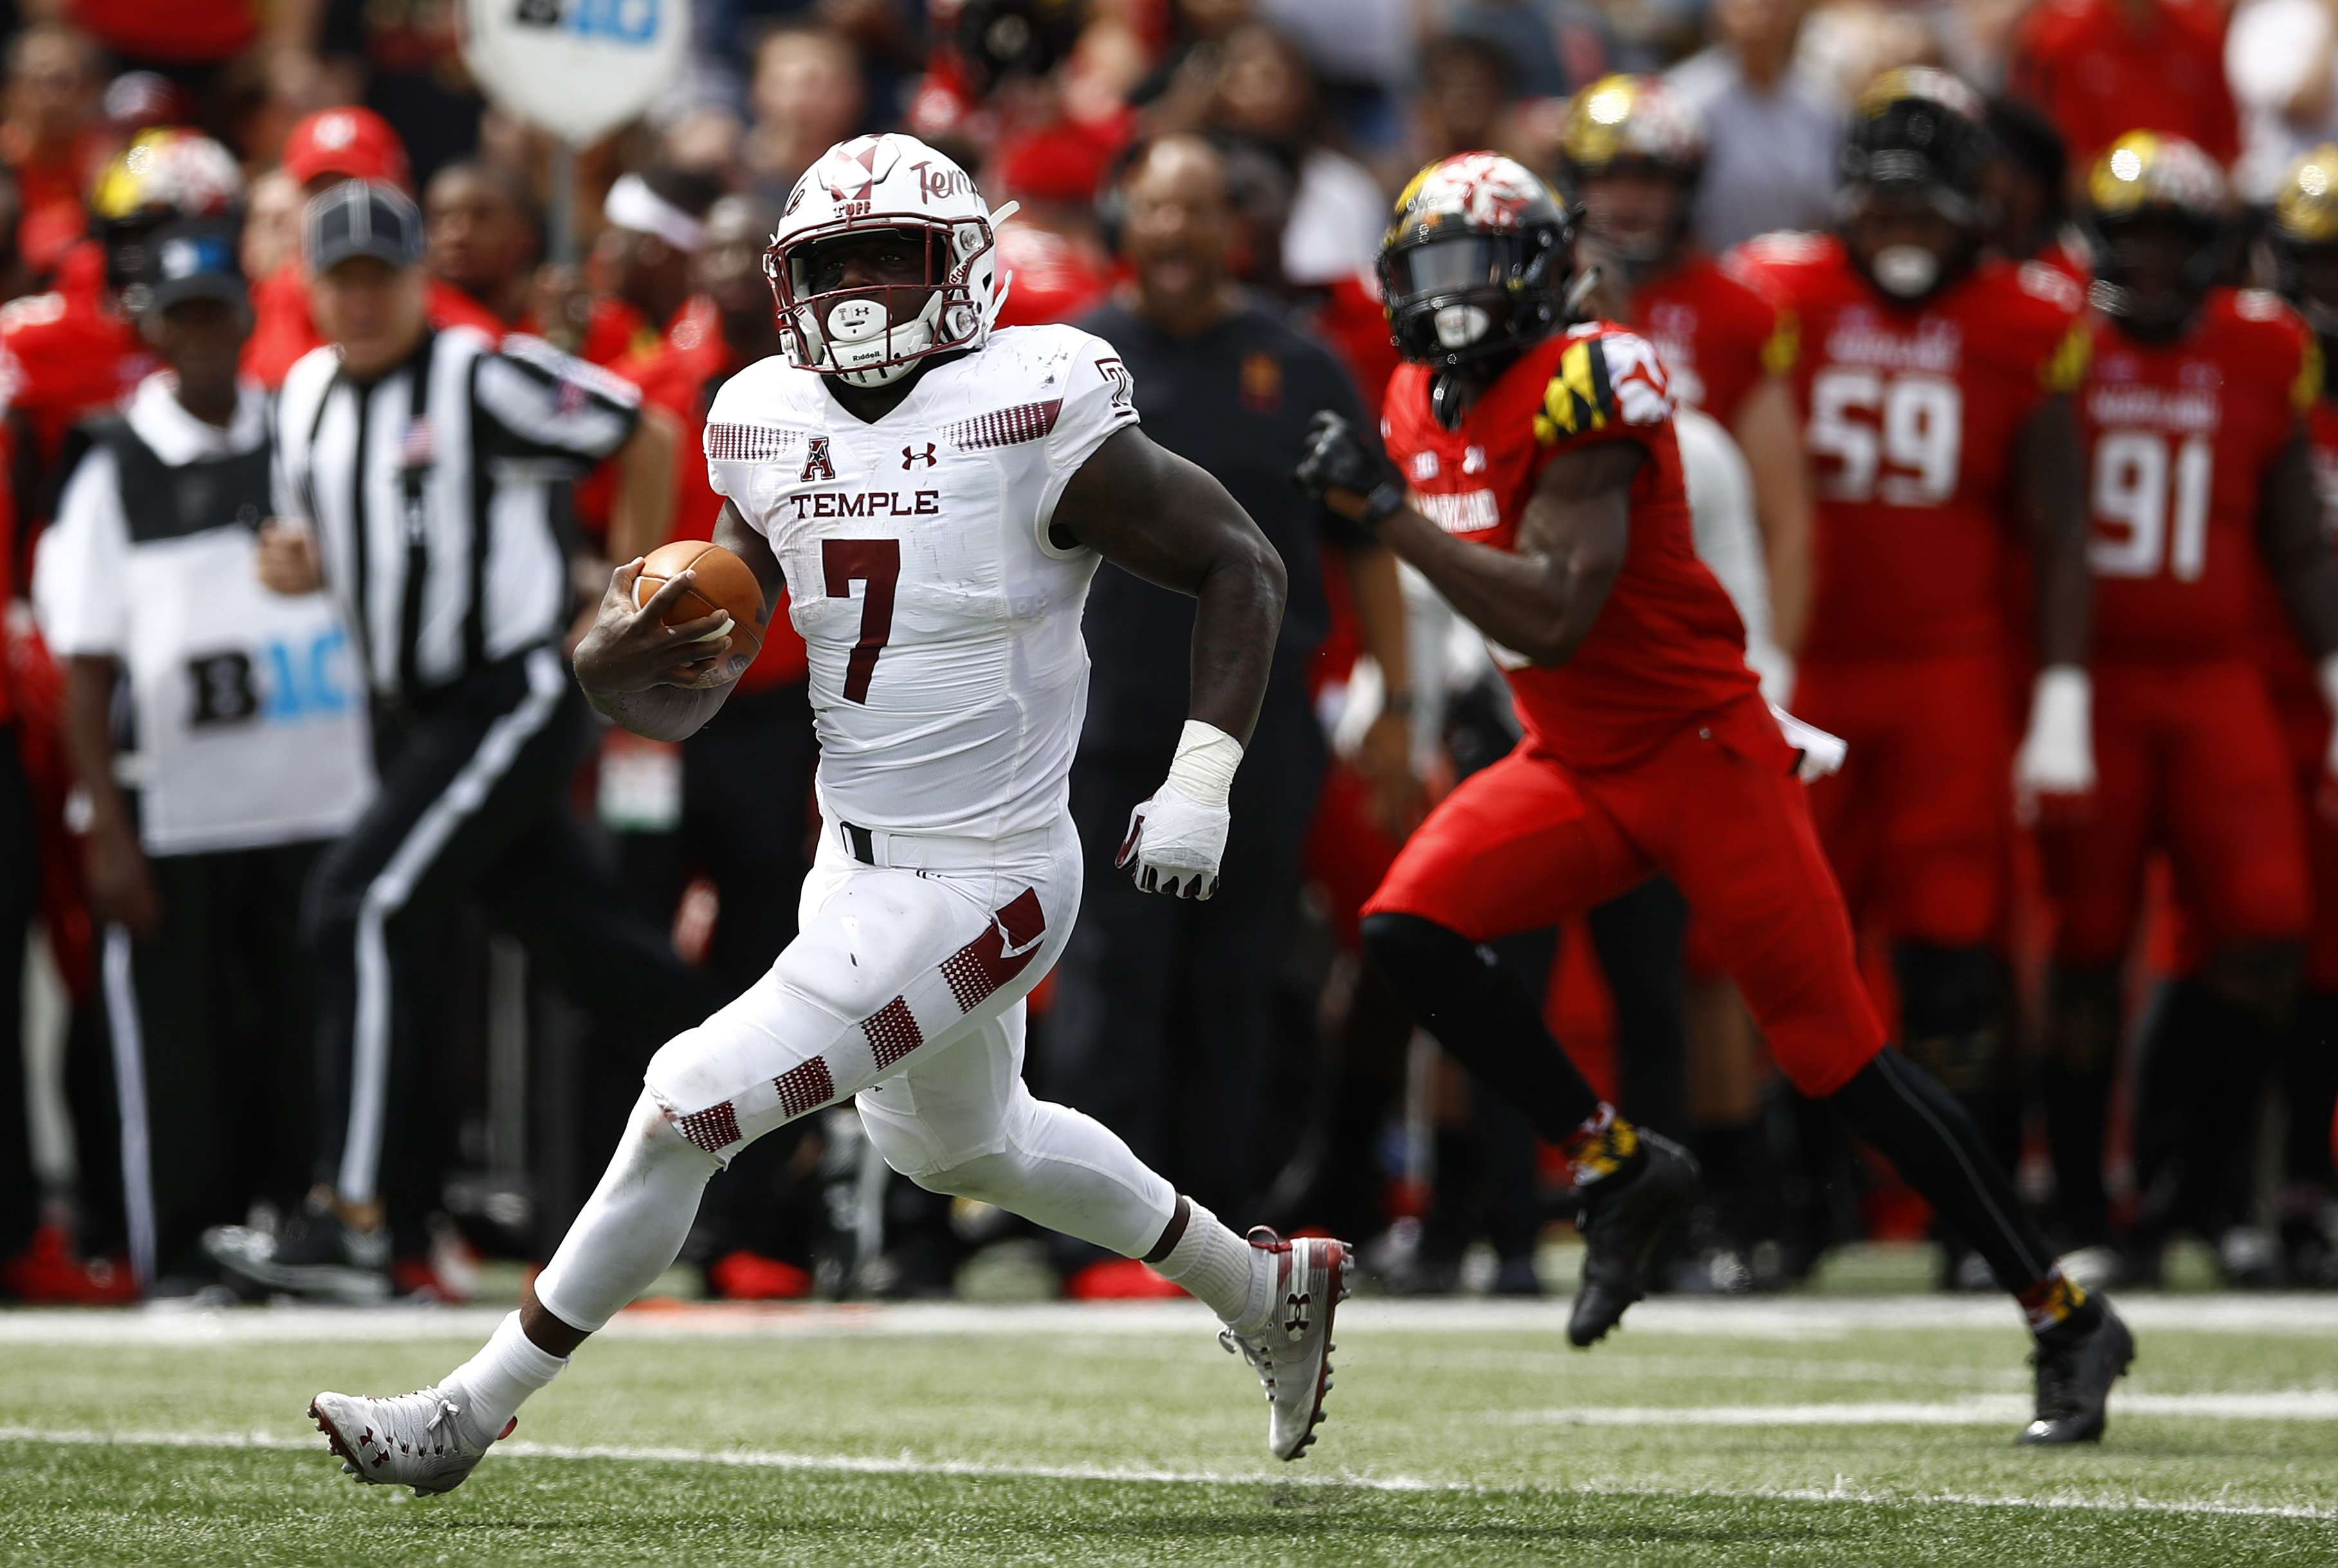 Temple running back Ryquell Armstead rushes for a first down in the first half of an NCAA college football game against Maryland, Saturday, Sept. 15, 2018, in College Park, Md. (AP Photo/Patrick Semansky)